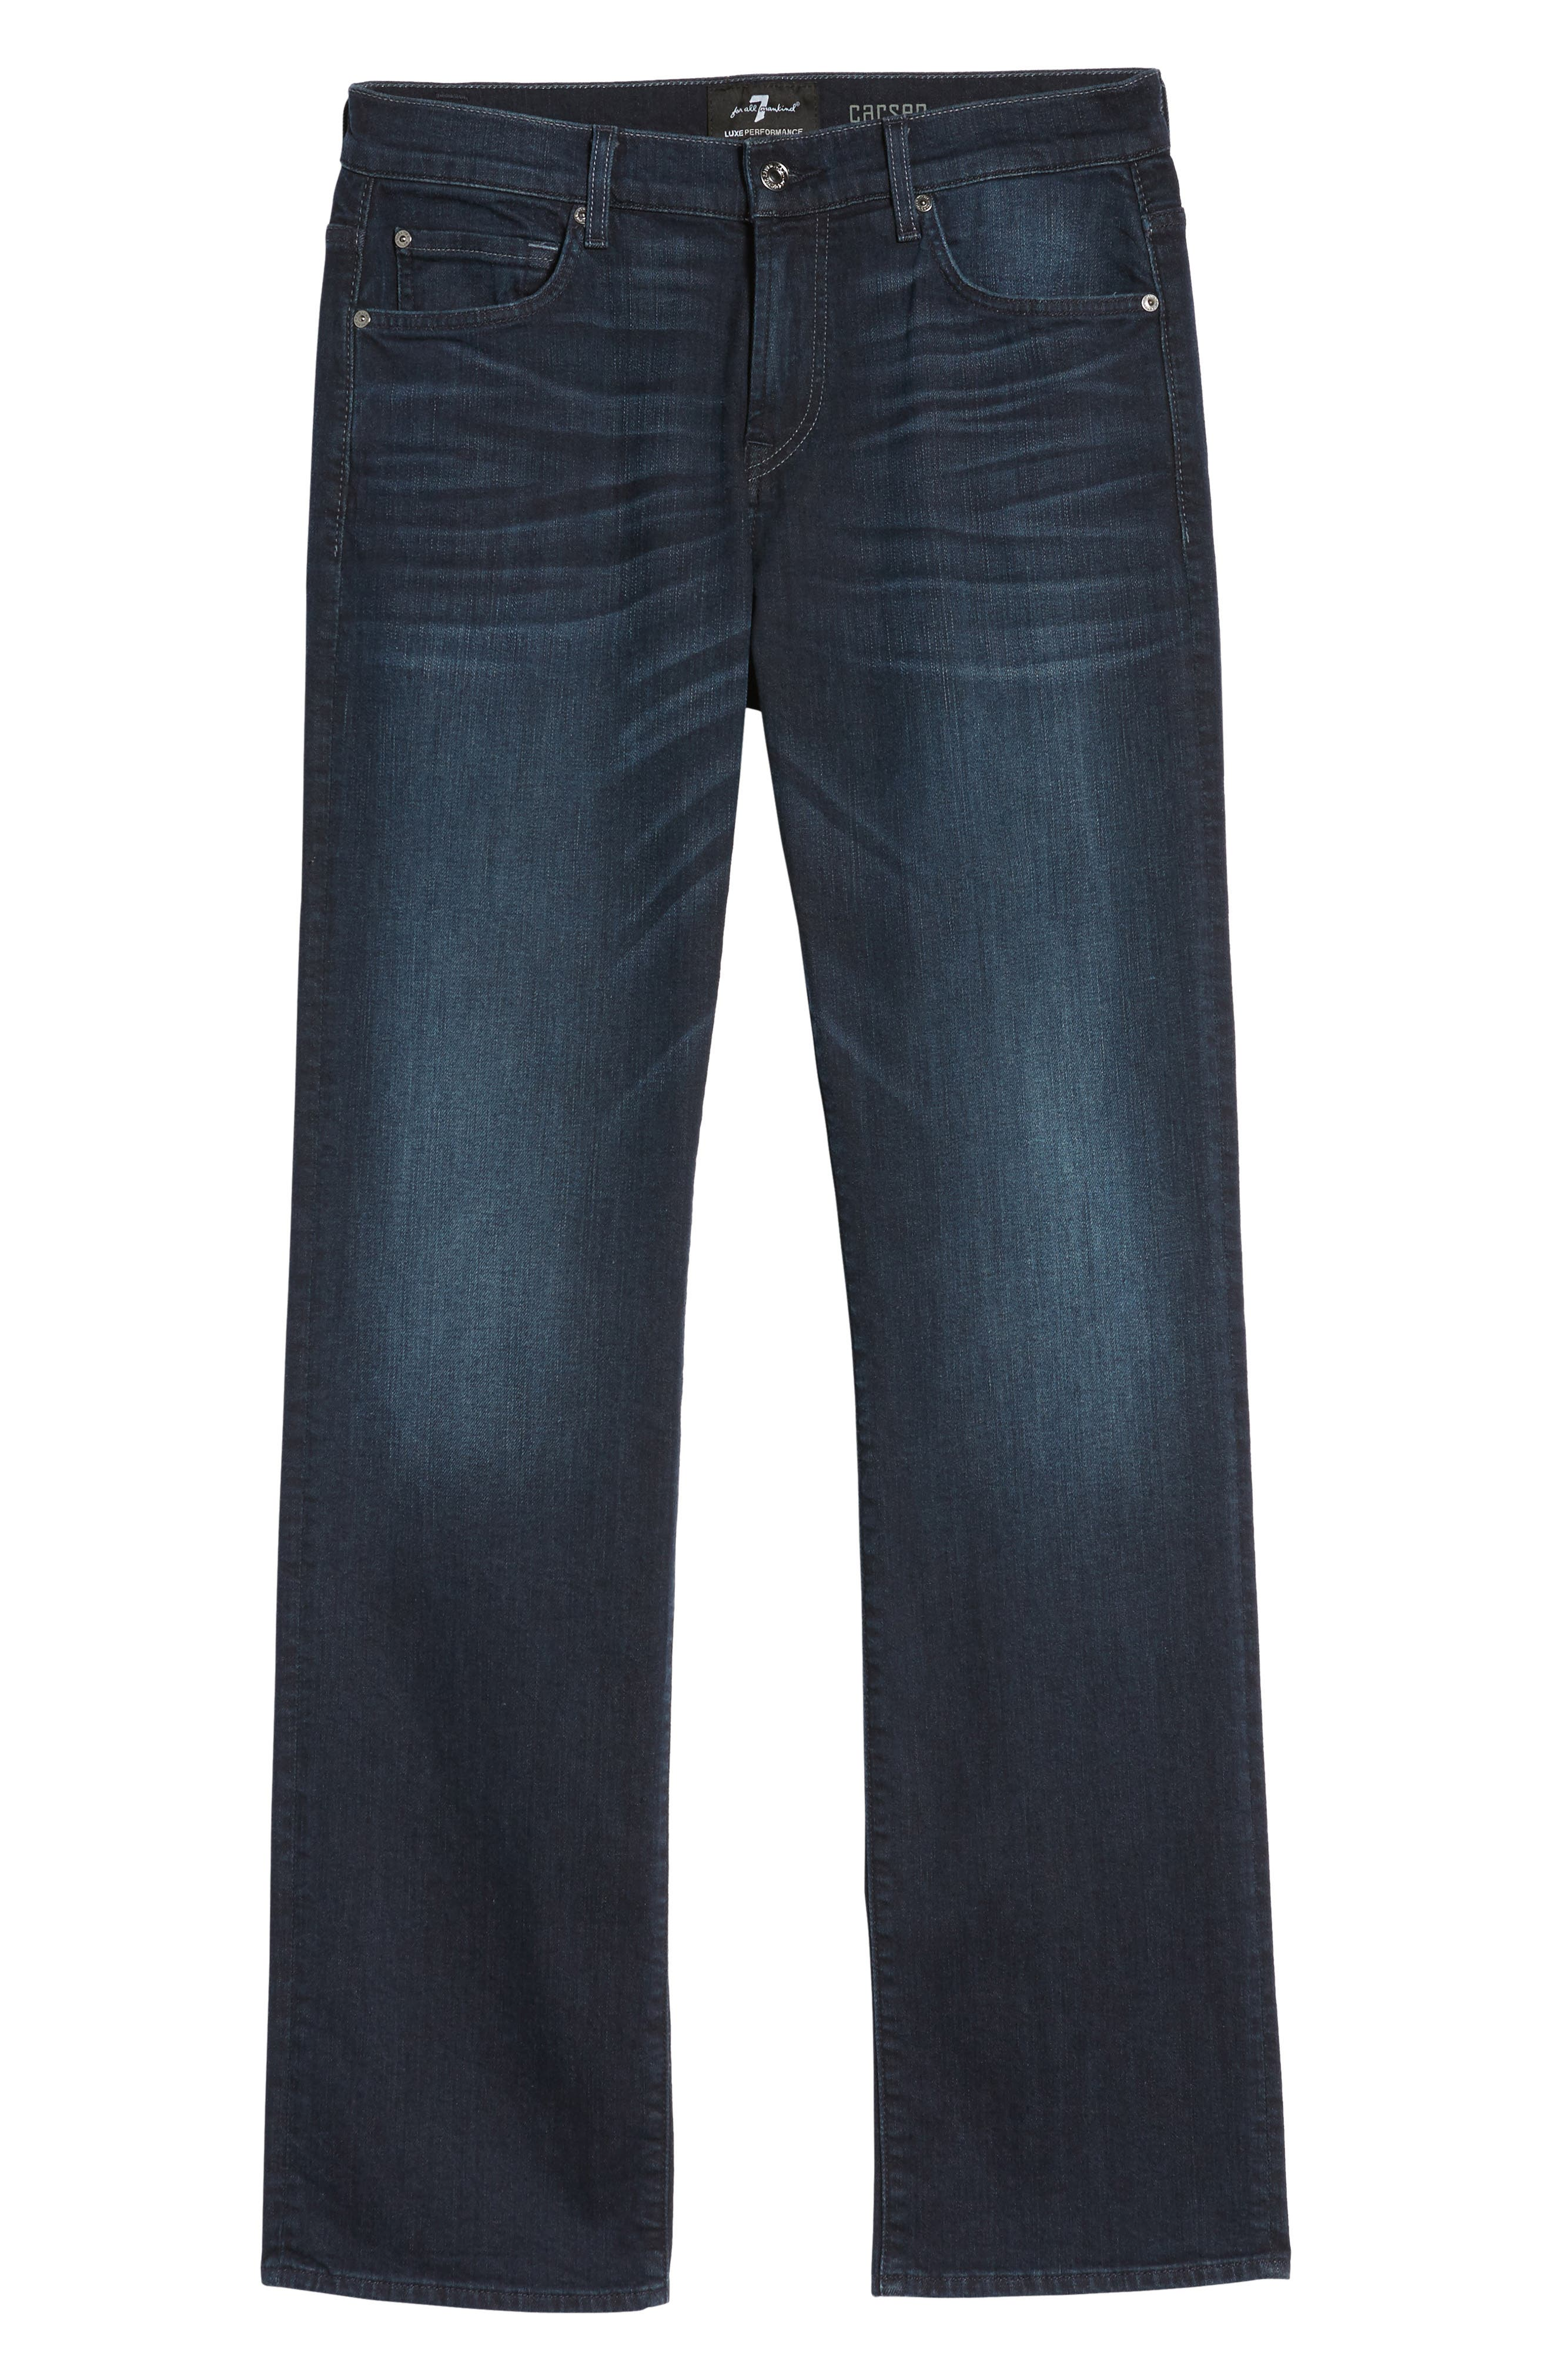 7 FOR ALL MANKIND<SUP>®</SUP>, Luxe Performance - Carsen Straight Leg Jeans, Alternate thumbnail 7, color, DARK CURRENT